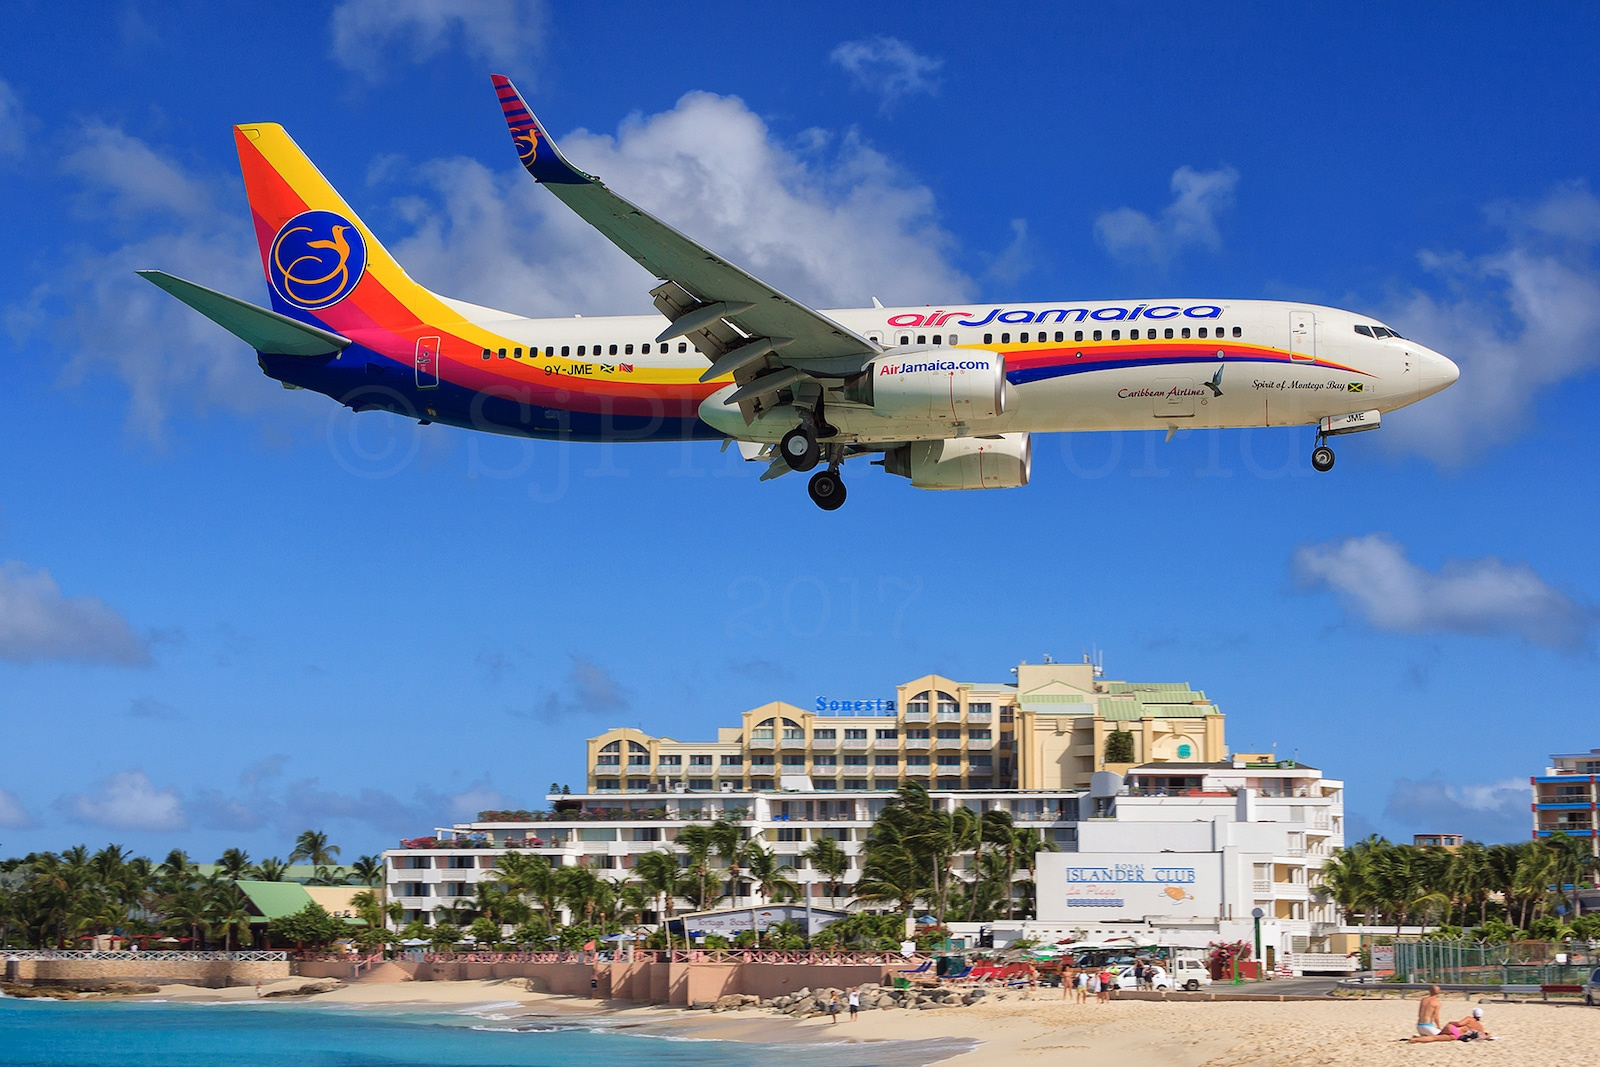 Jamaica Airline